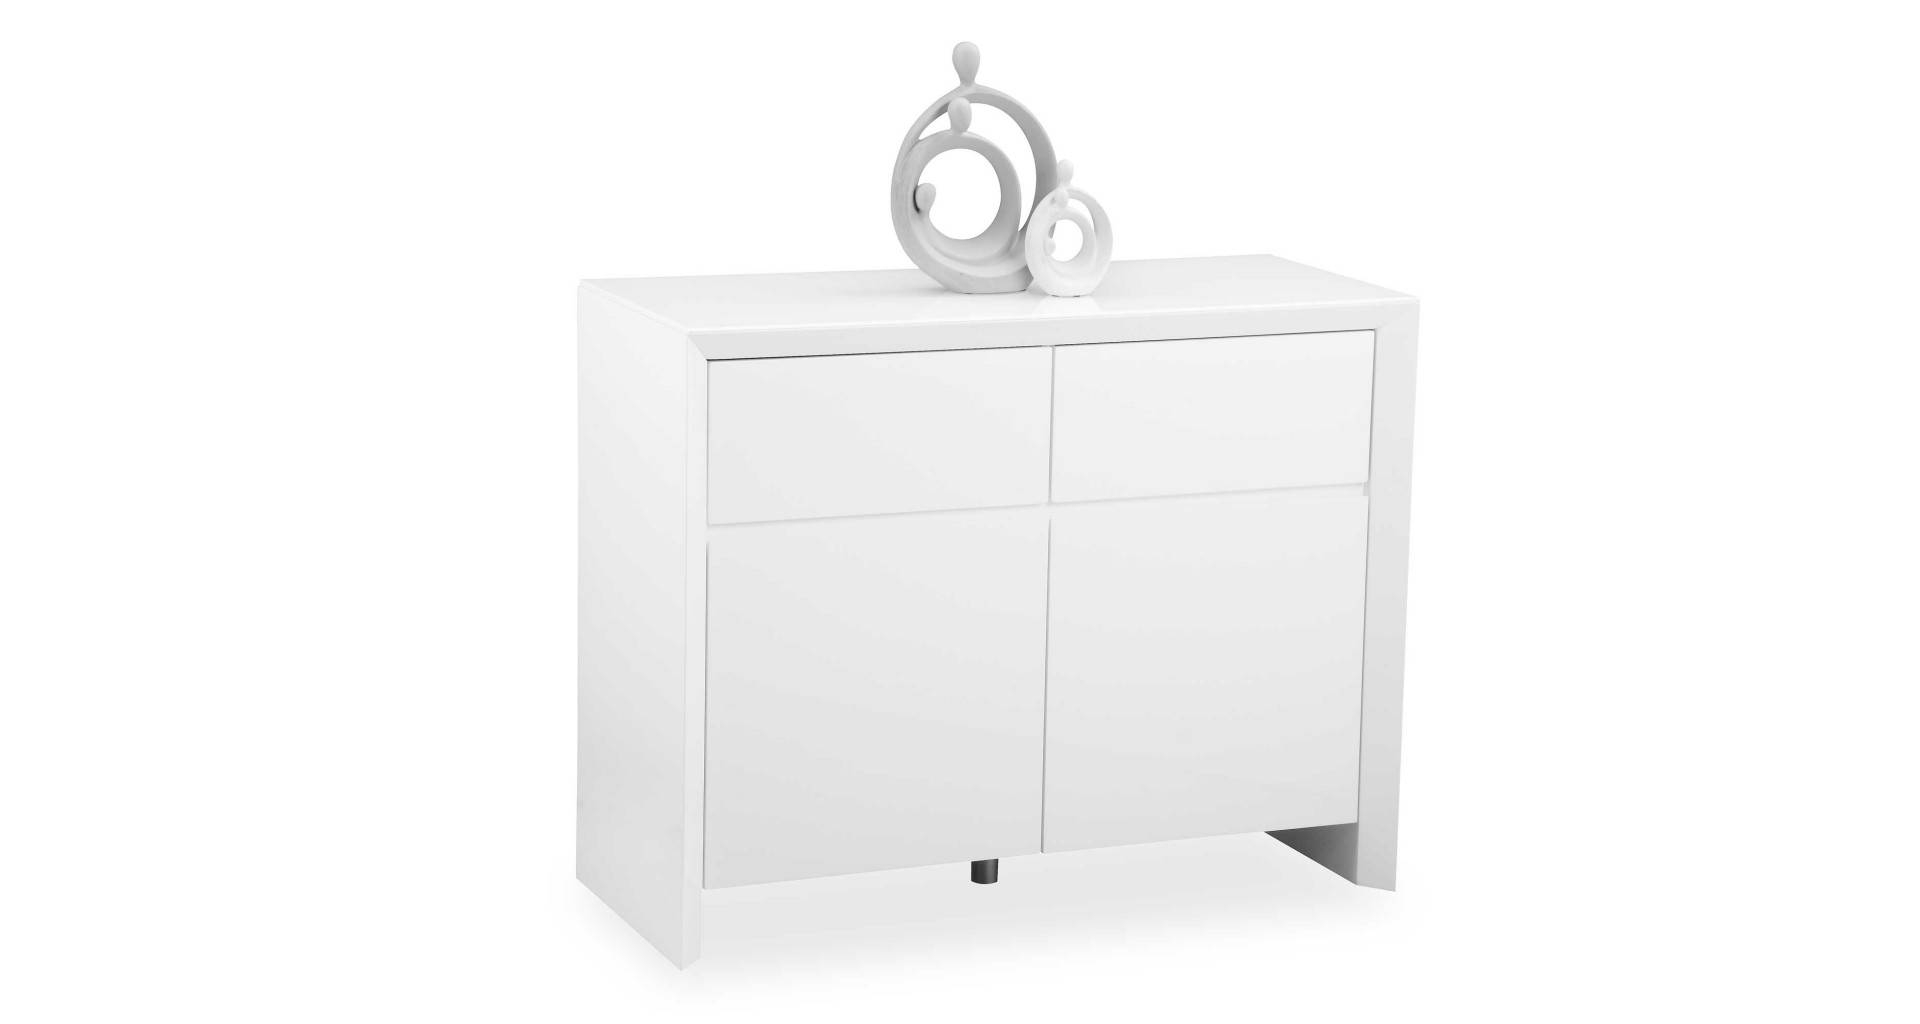 Soho - White - Small Sideboard - High Gloss pertaining to Small White Sideboards (Image 30 of 30)